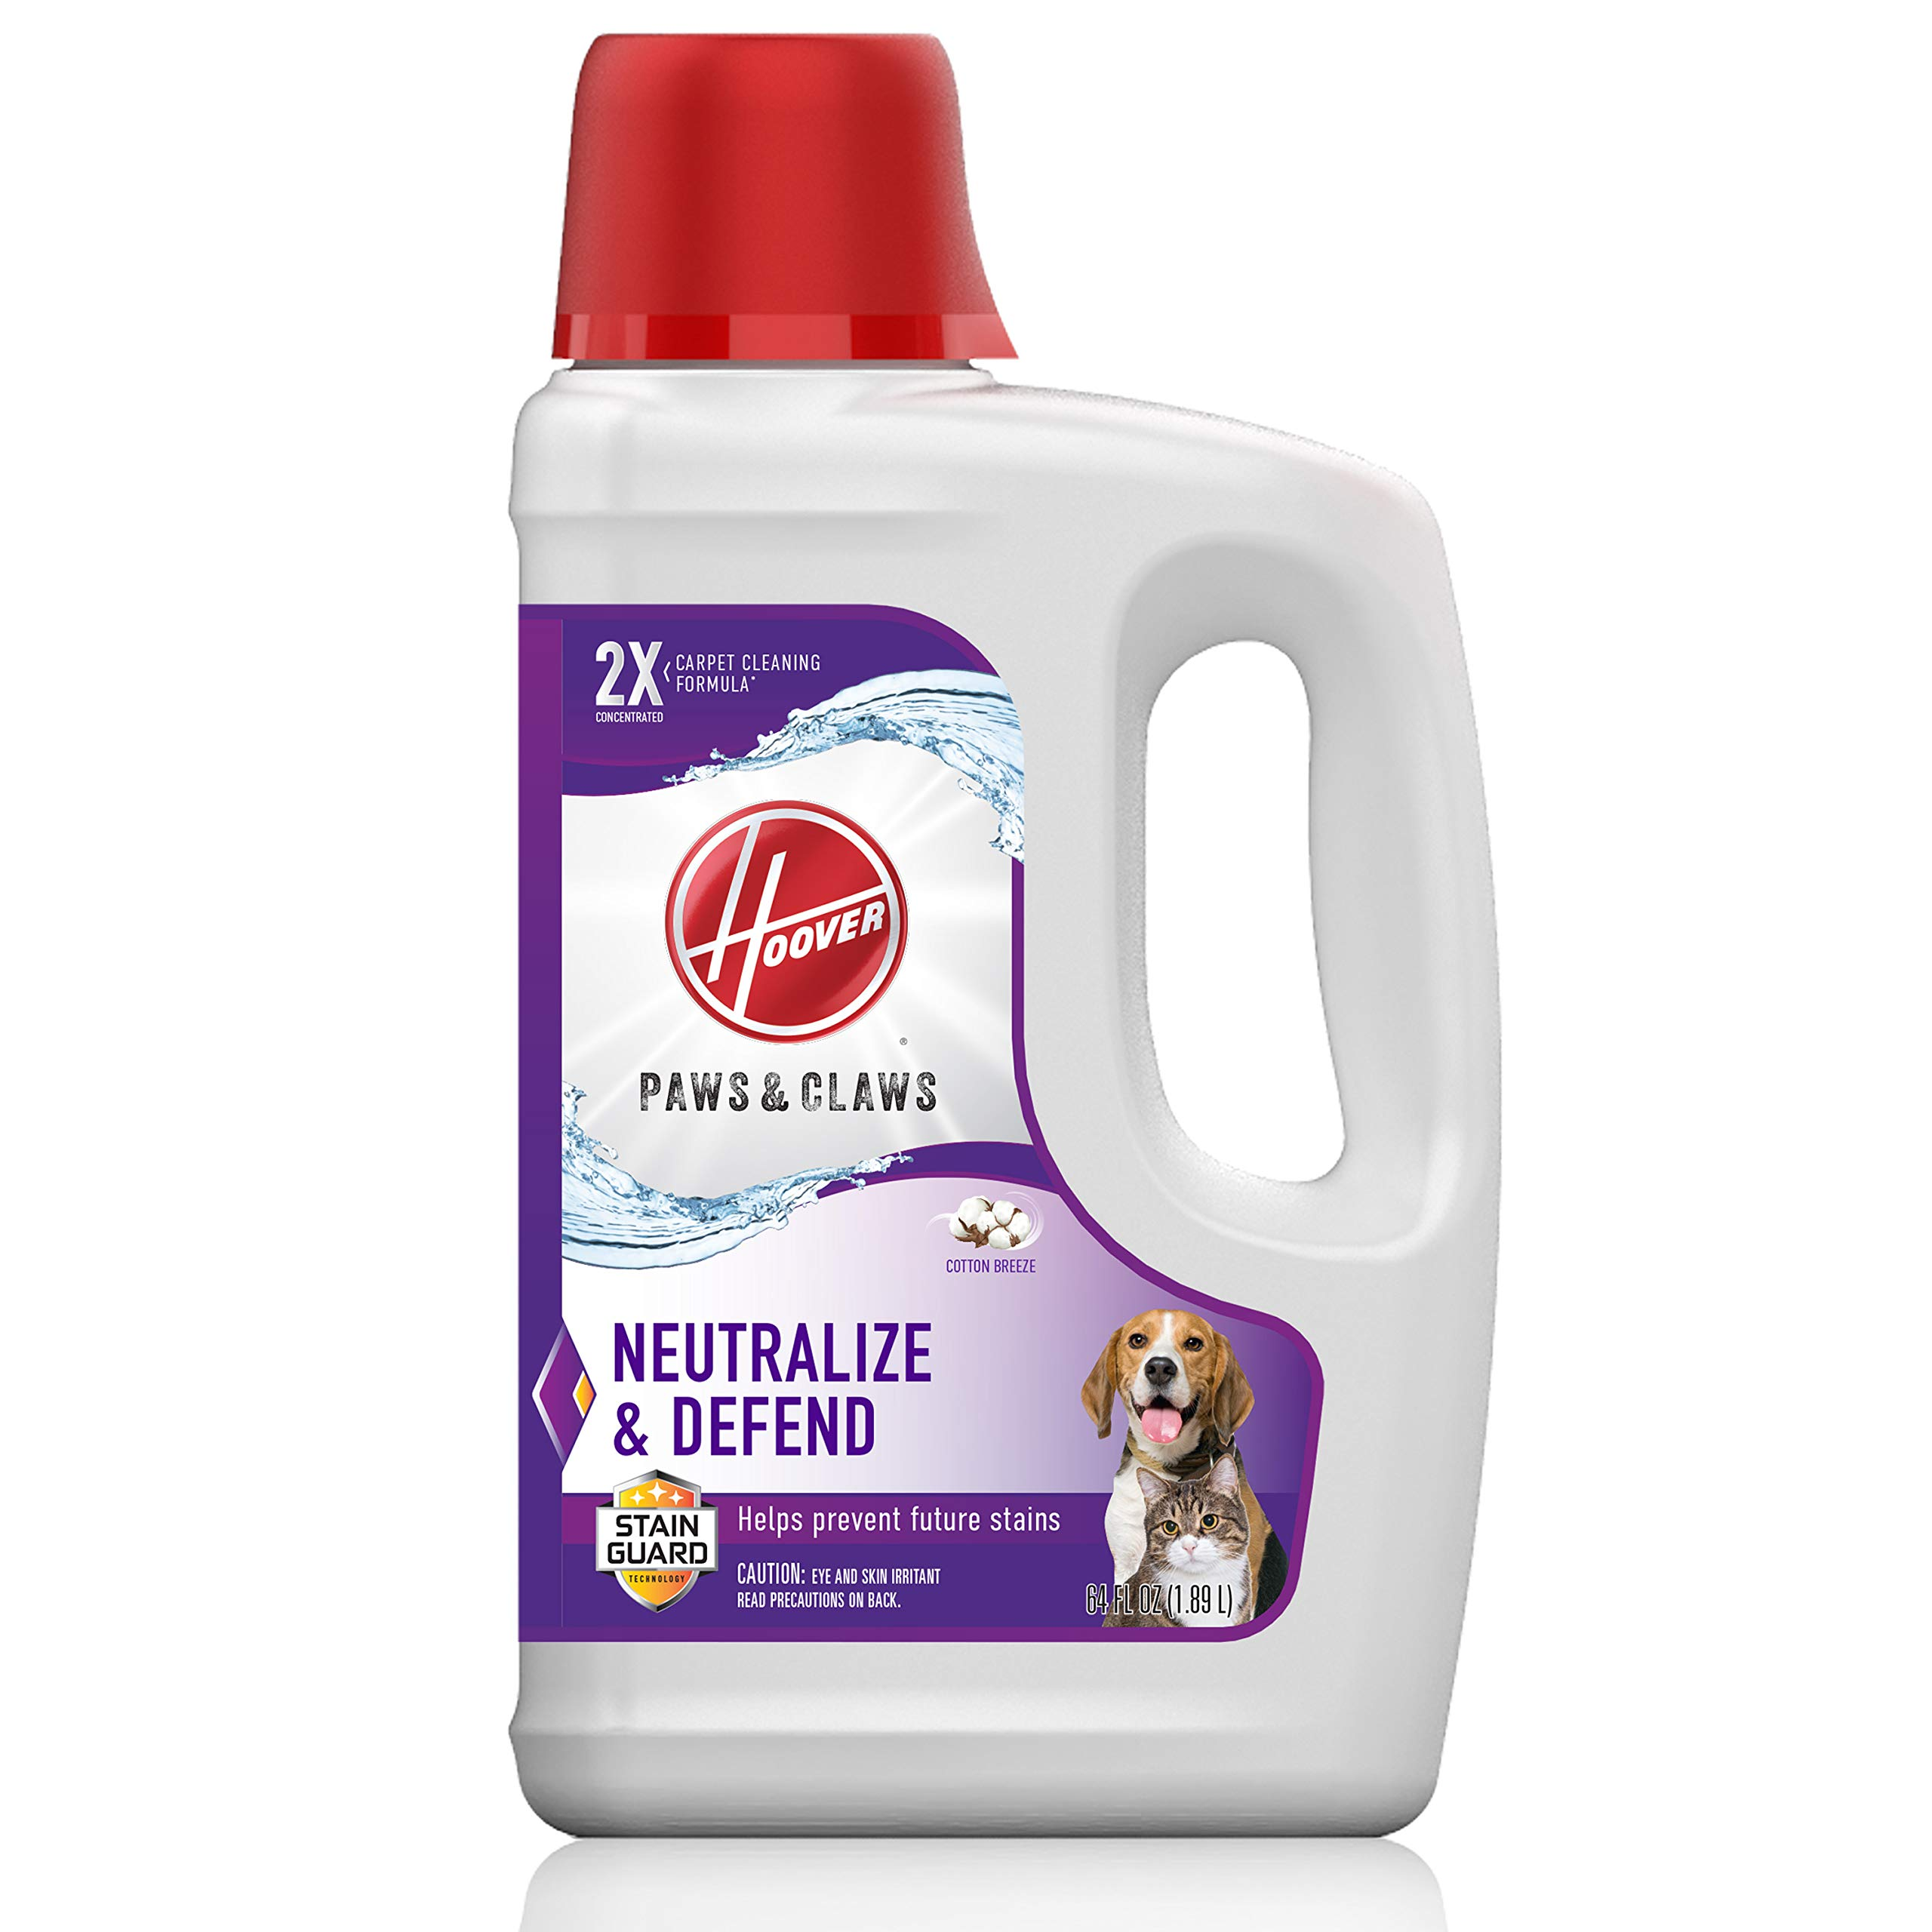 Hoover Paws & Claws Deep Cleaning Carpet Shampoo with Stainguard, Concentrated Machine Cleaner Solution for Pets, 64oz Formula, AH30925, White by Hoover (Image #1)